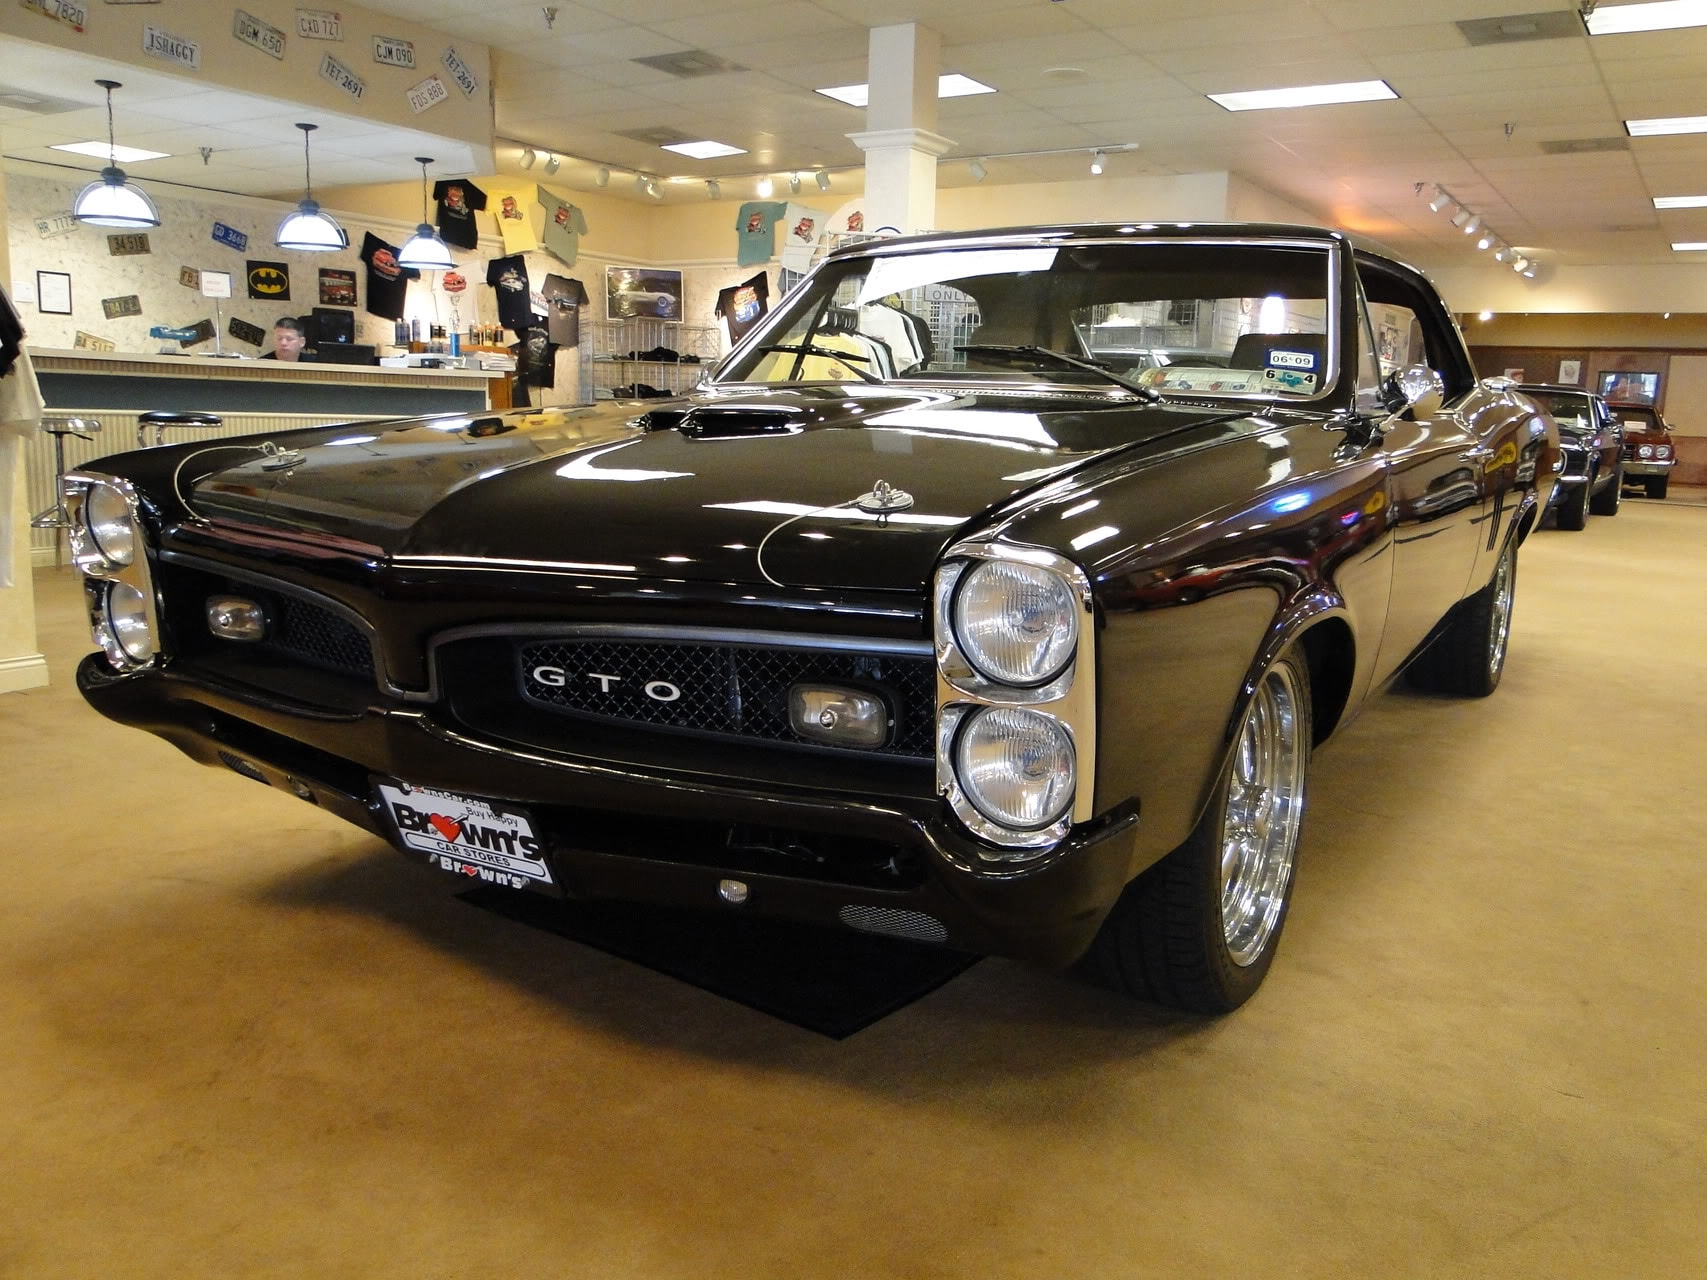 used 1967 pontiac gto tribute pro touring sold to mo for sale stock number in va. Black Bedroom Furniture Sets. Home Design Ideas